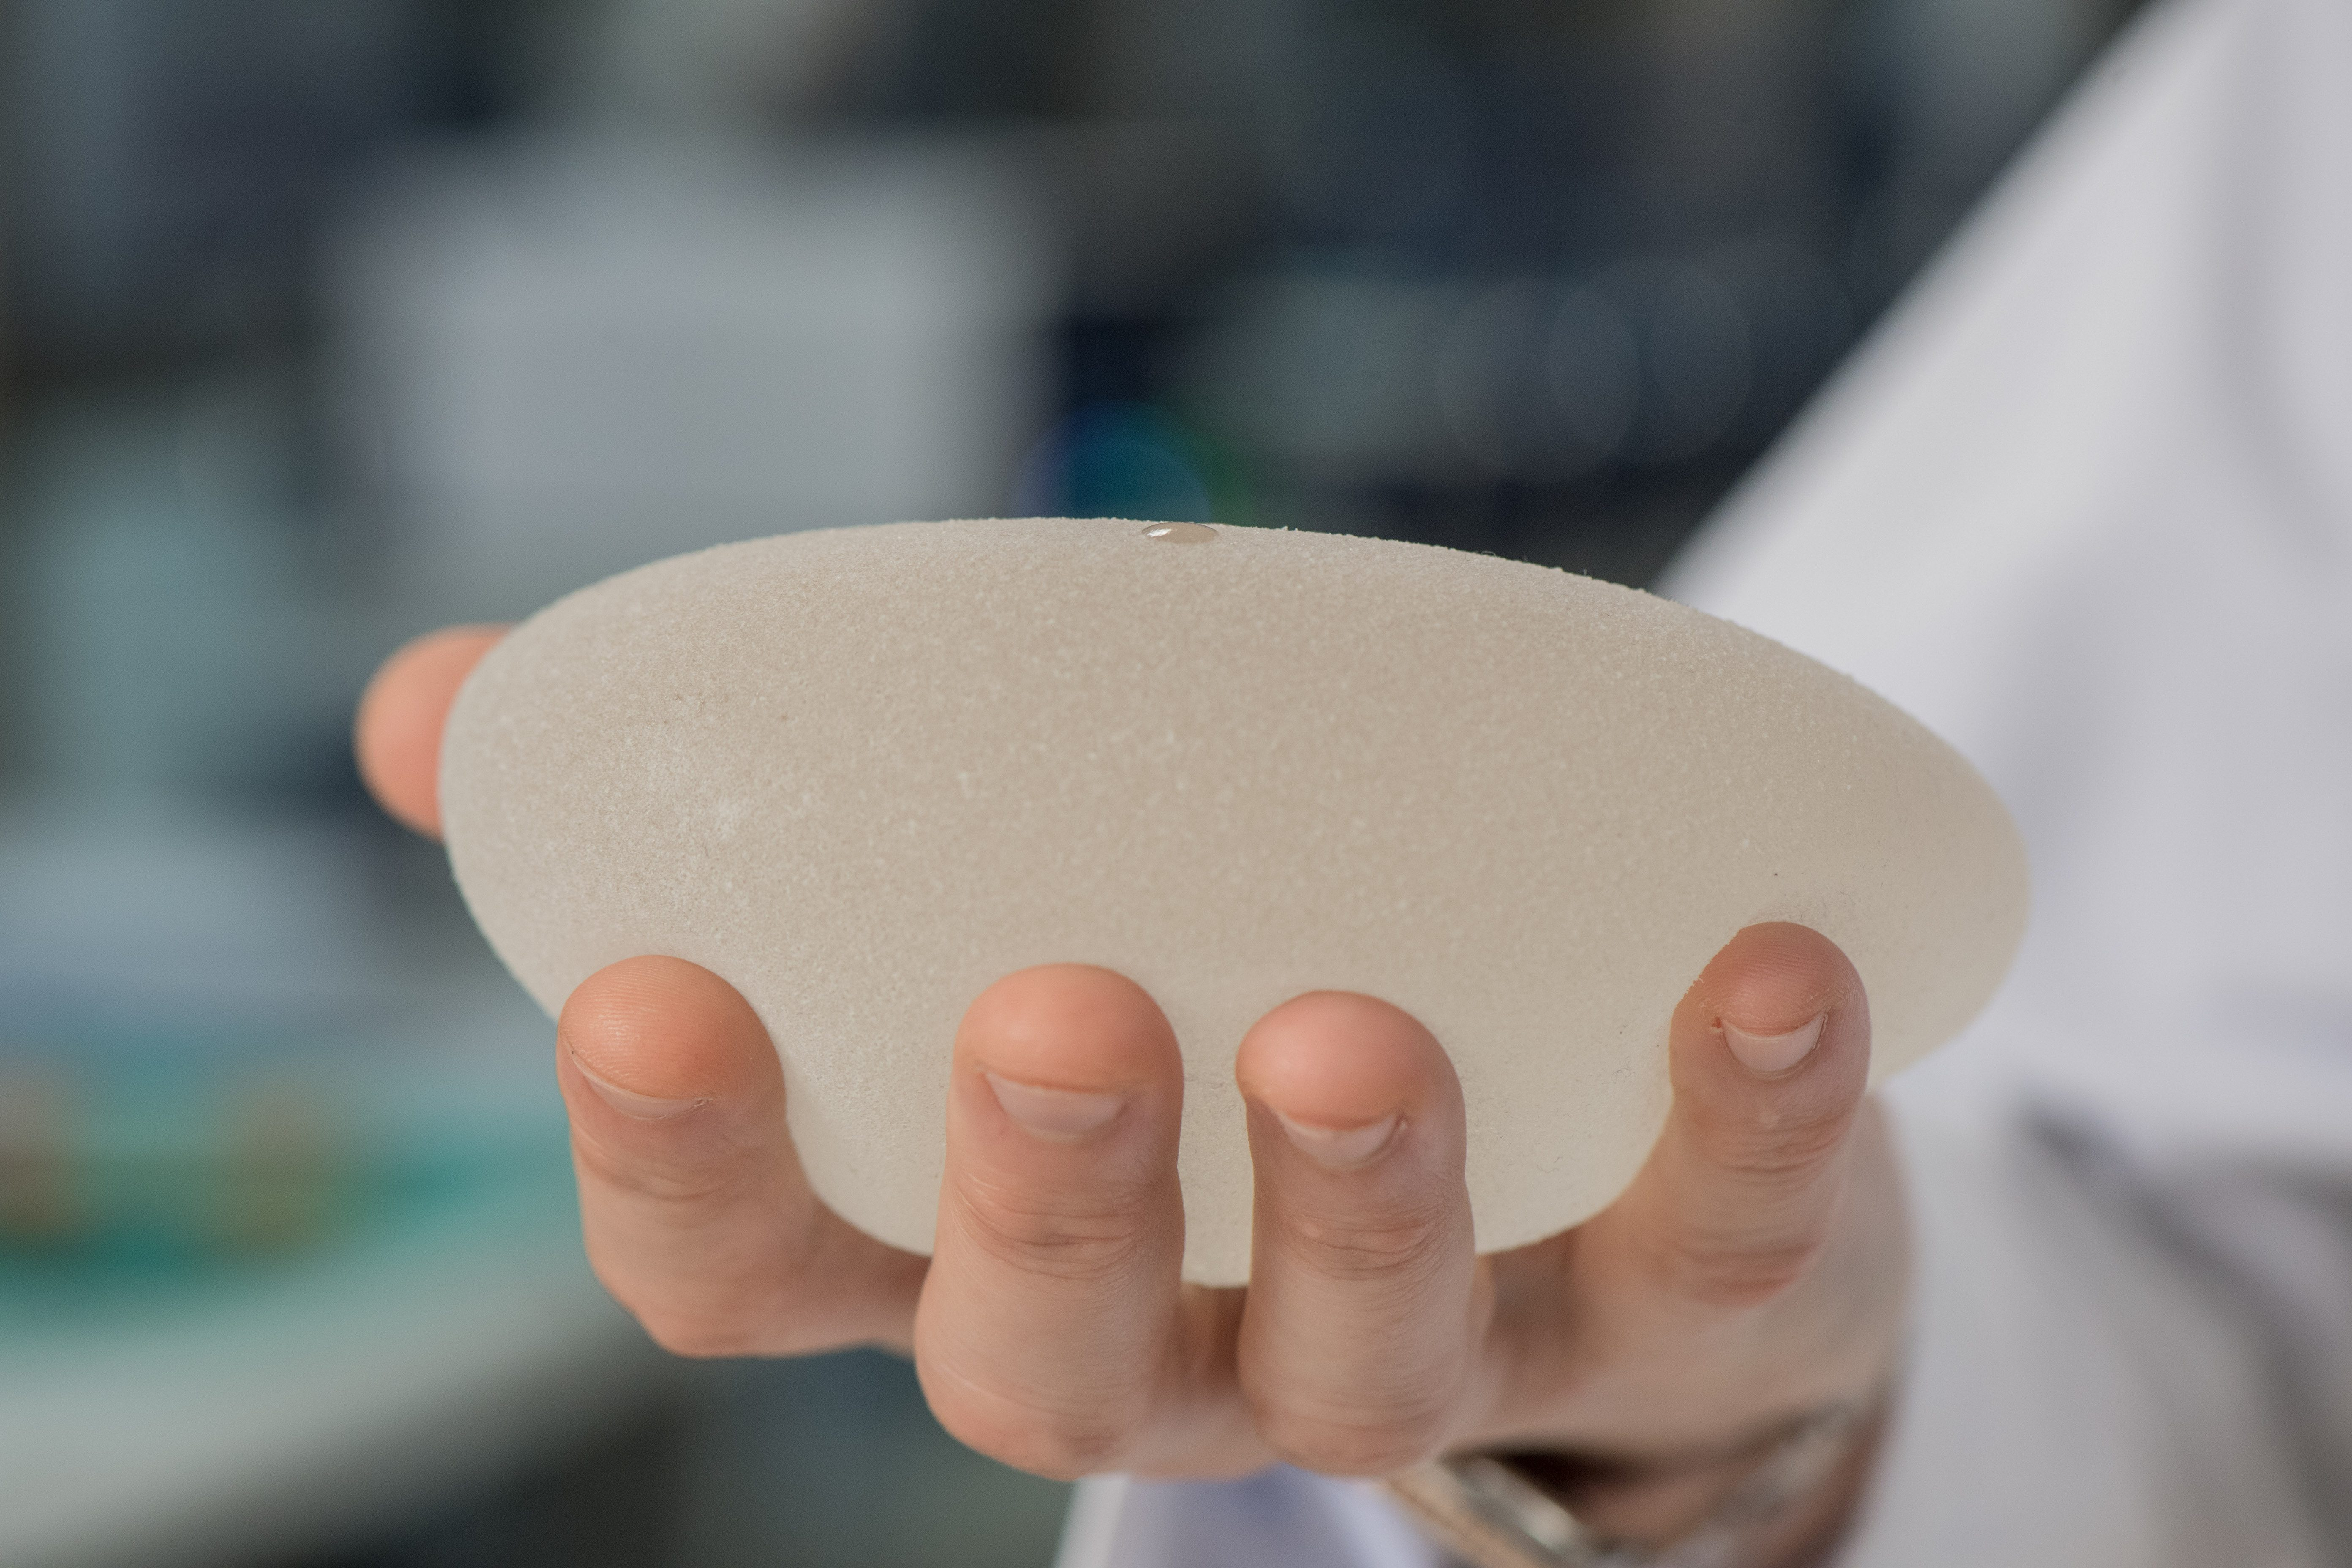 Mark Clemens, M.D., holds a silicone breast implant.